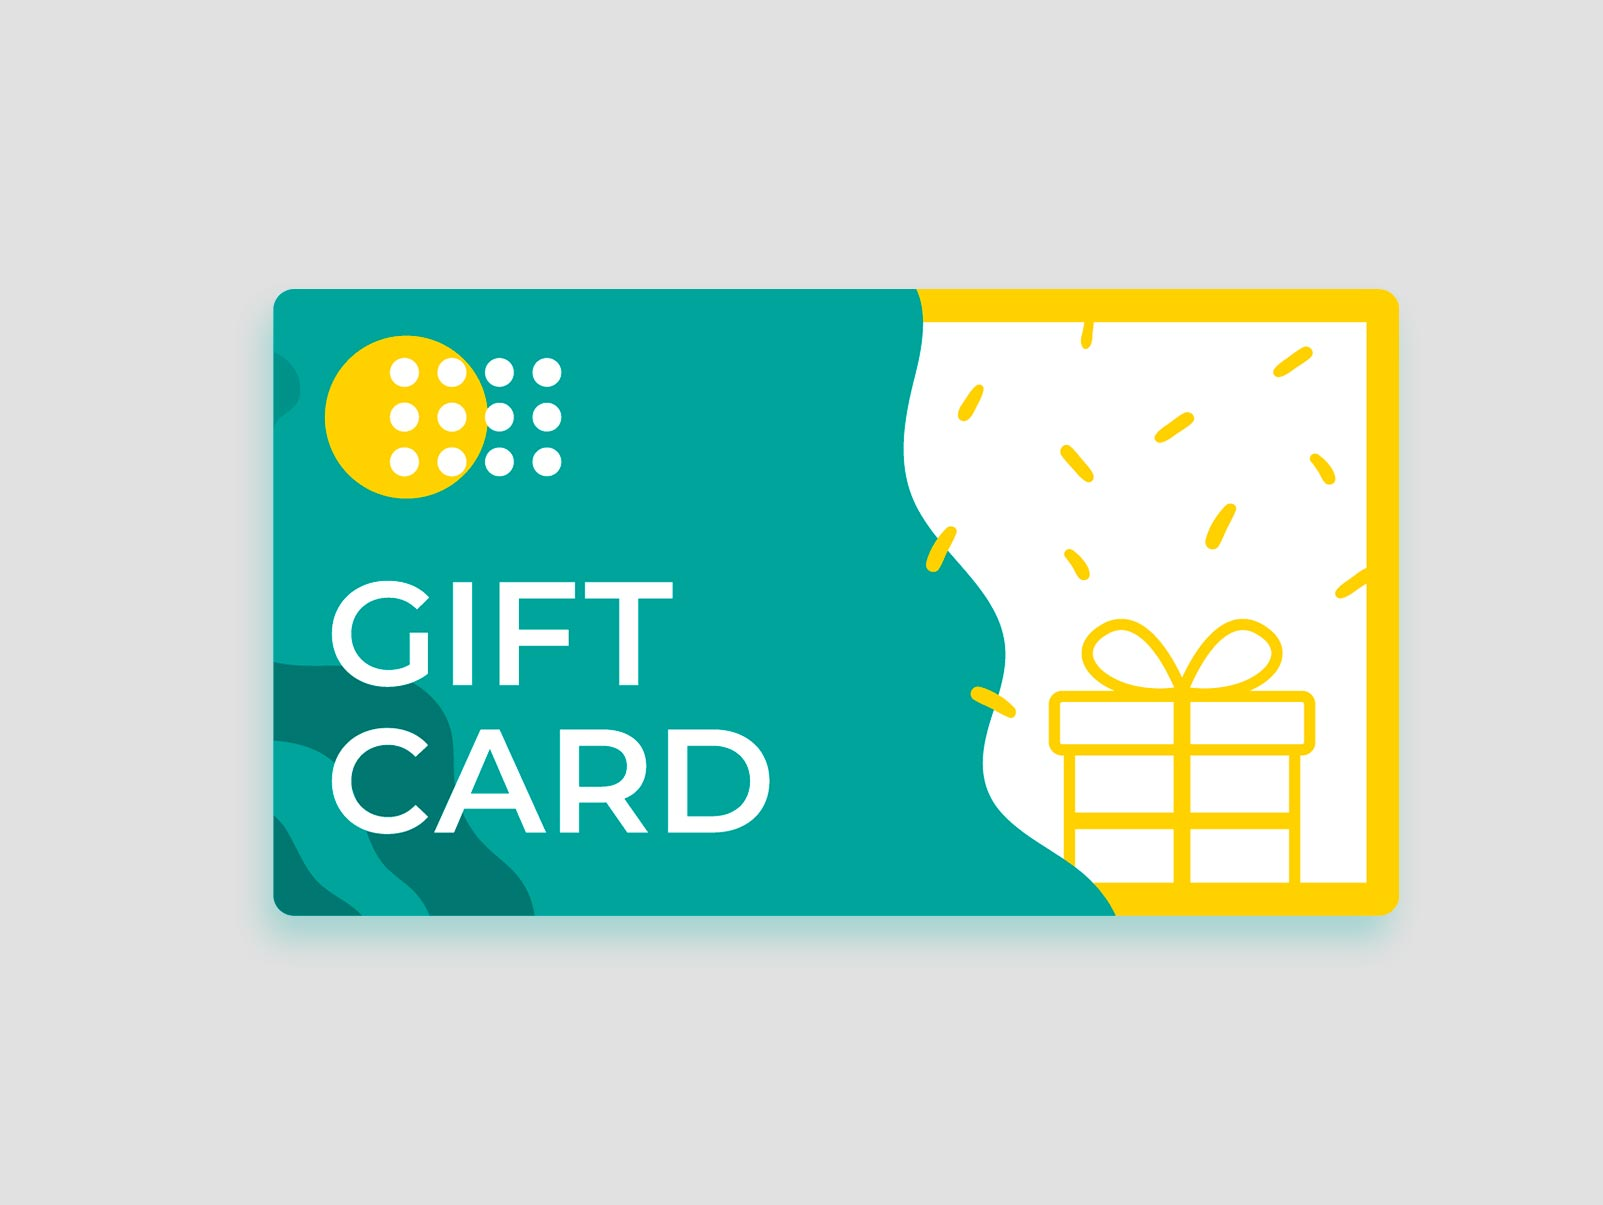 default giftcard main image